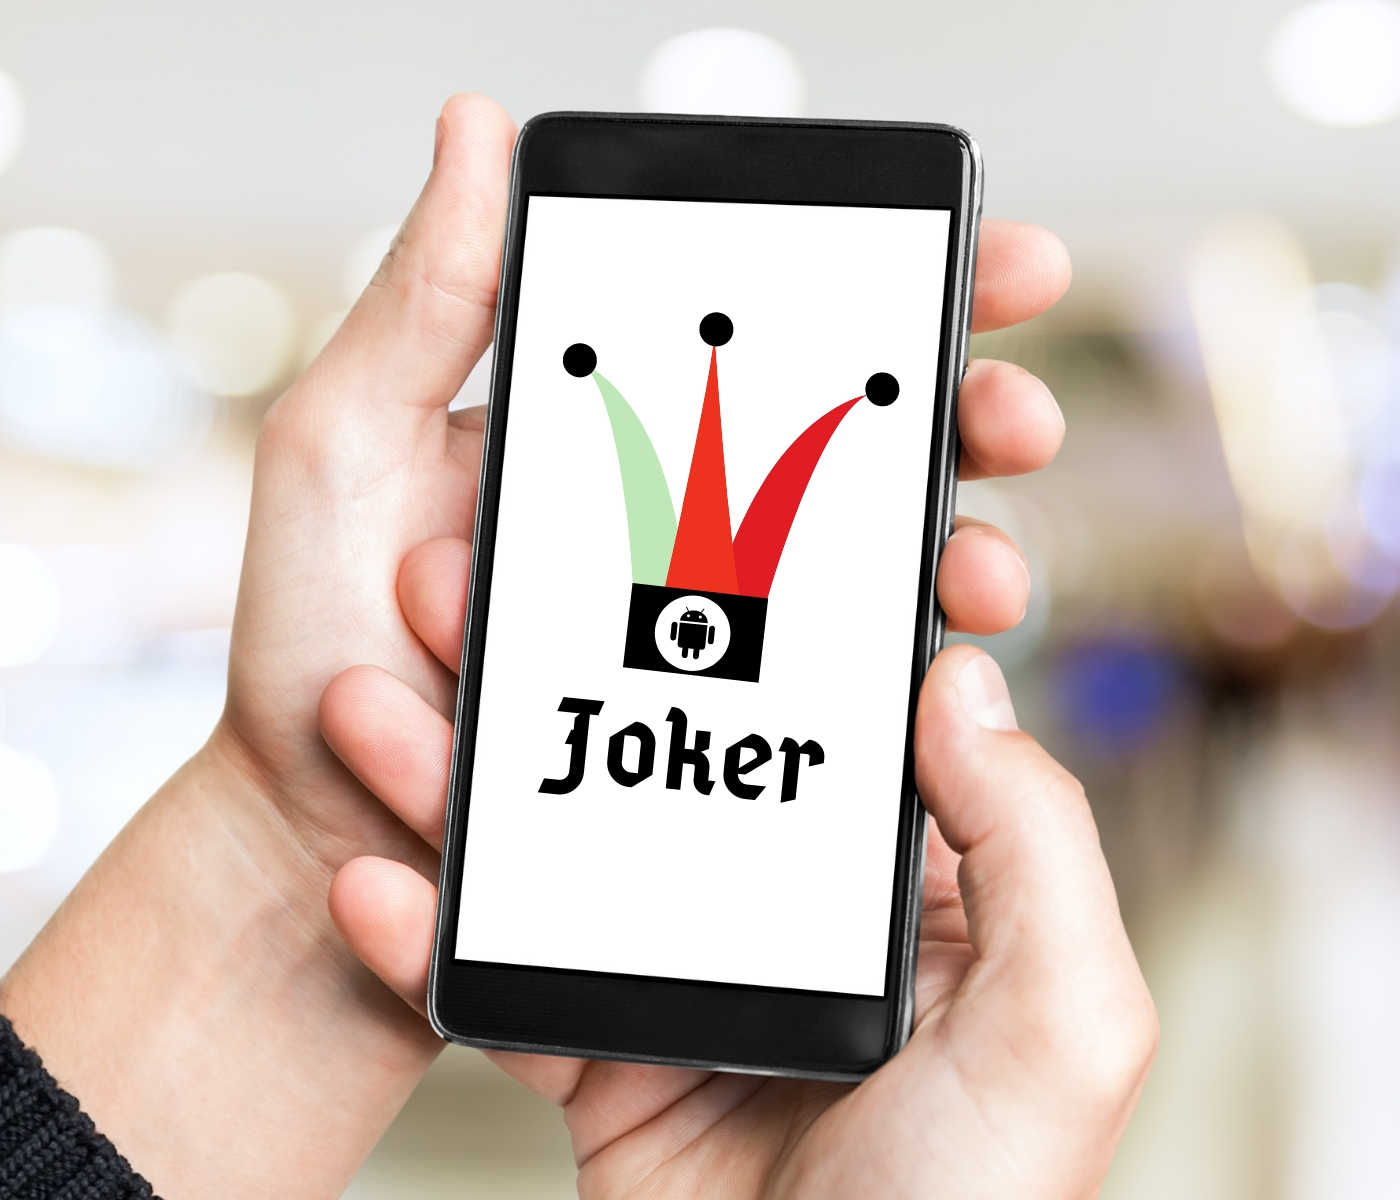 Android Joker Malware In 24 Applications On Play Store Revick